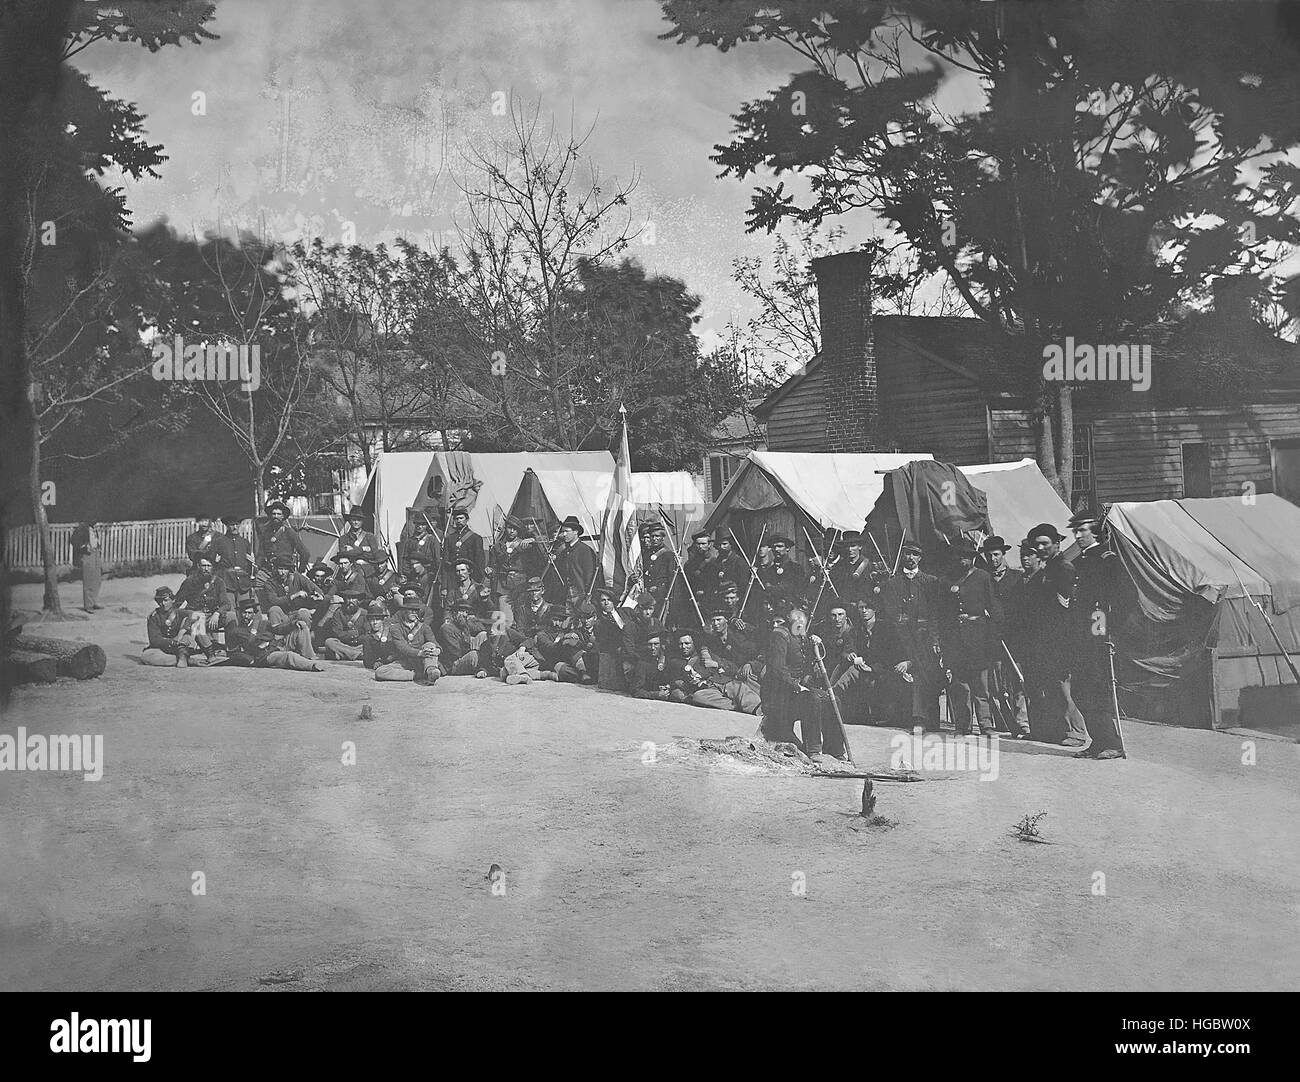 Infantry company group photo during the American Civil War. - Stock Image